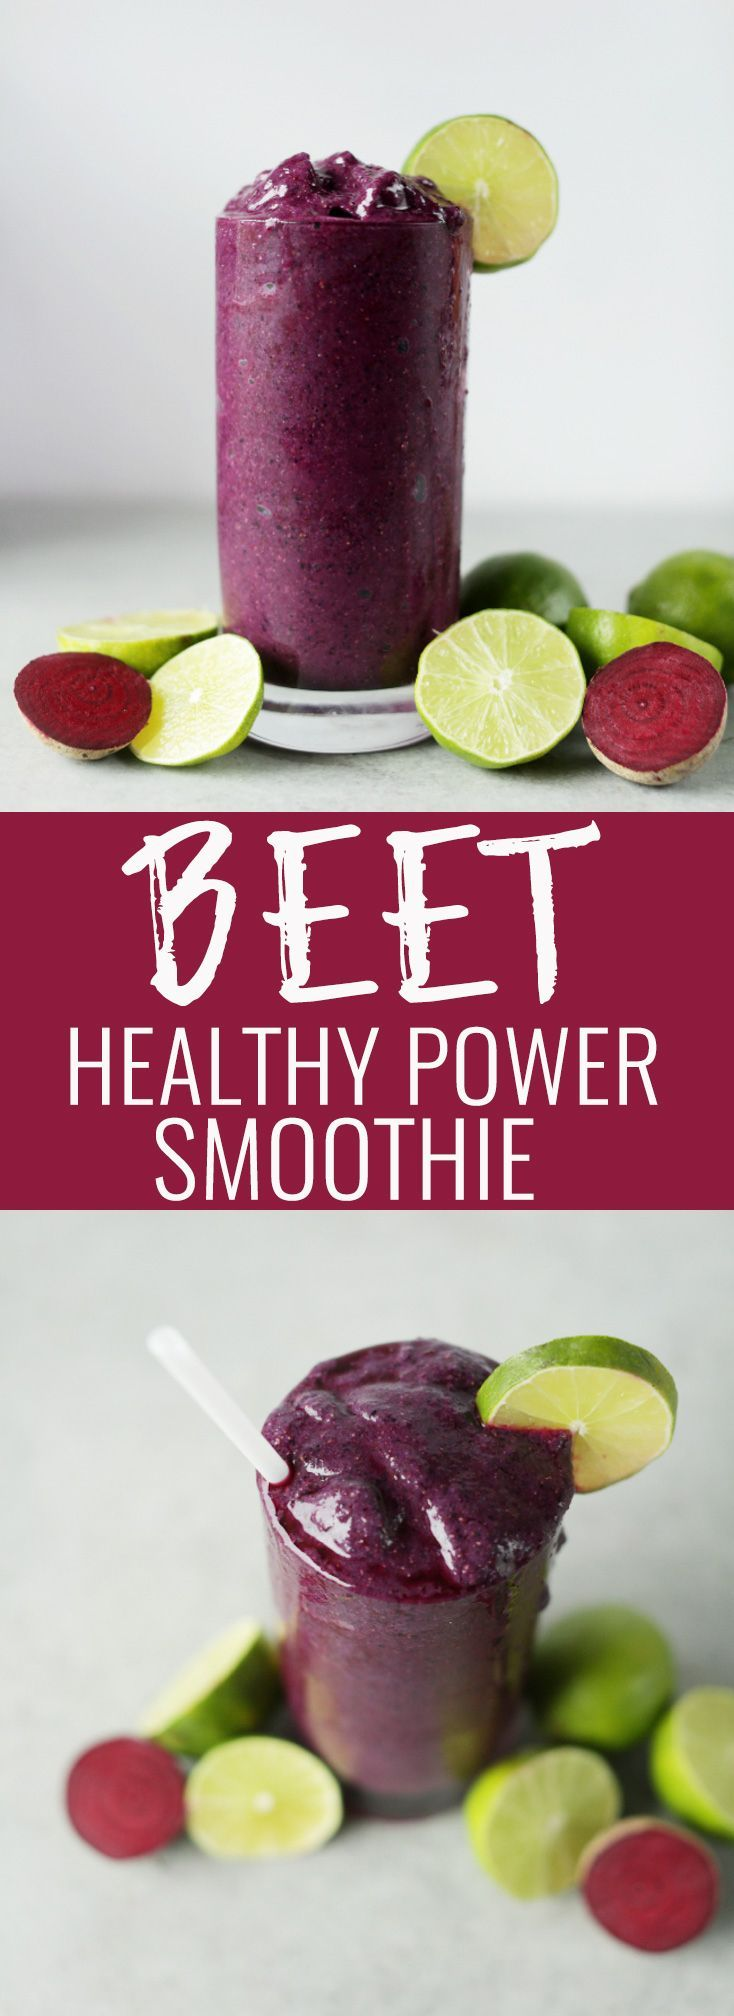 beet the cold smoothie recette smoothies smoothies smoothie recipes et beet smoothie. Black Bedroom Furniture Sets. Home Design Ideas